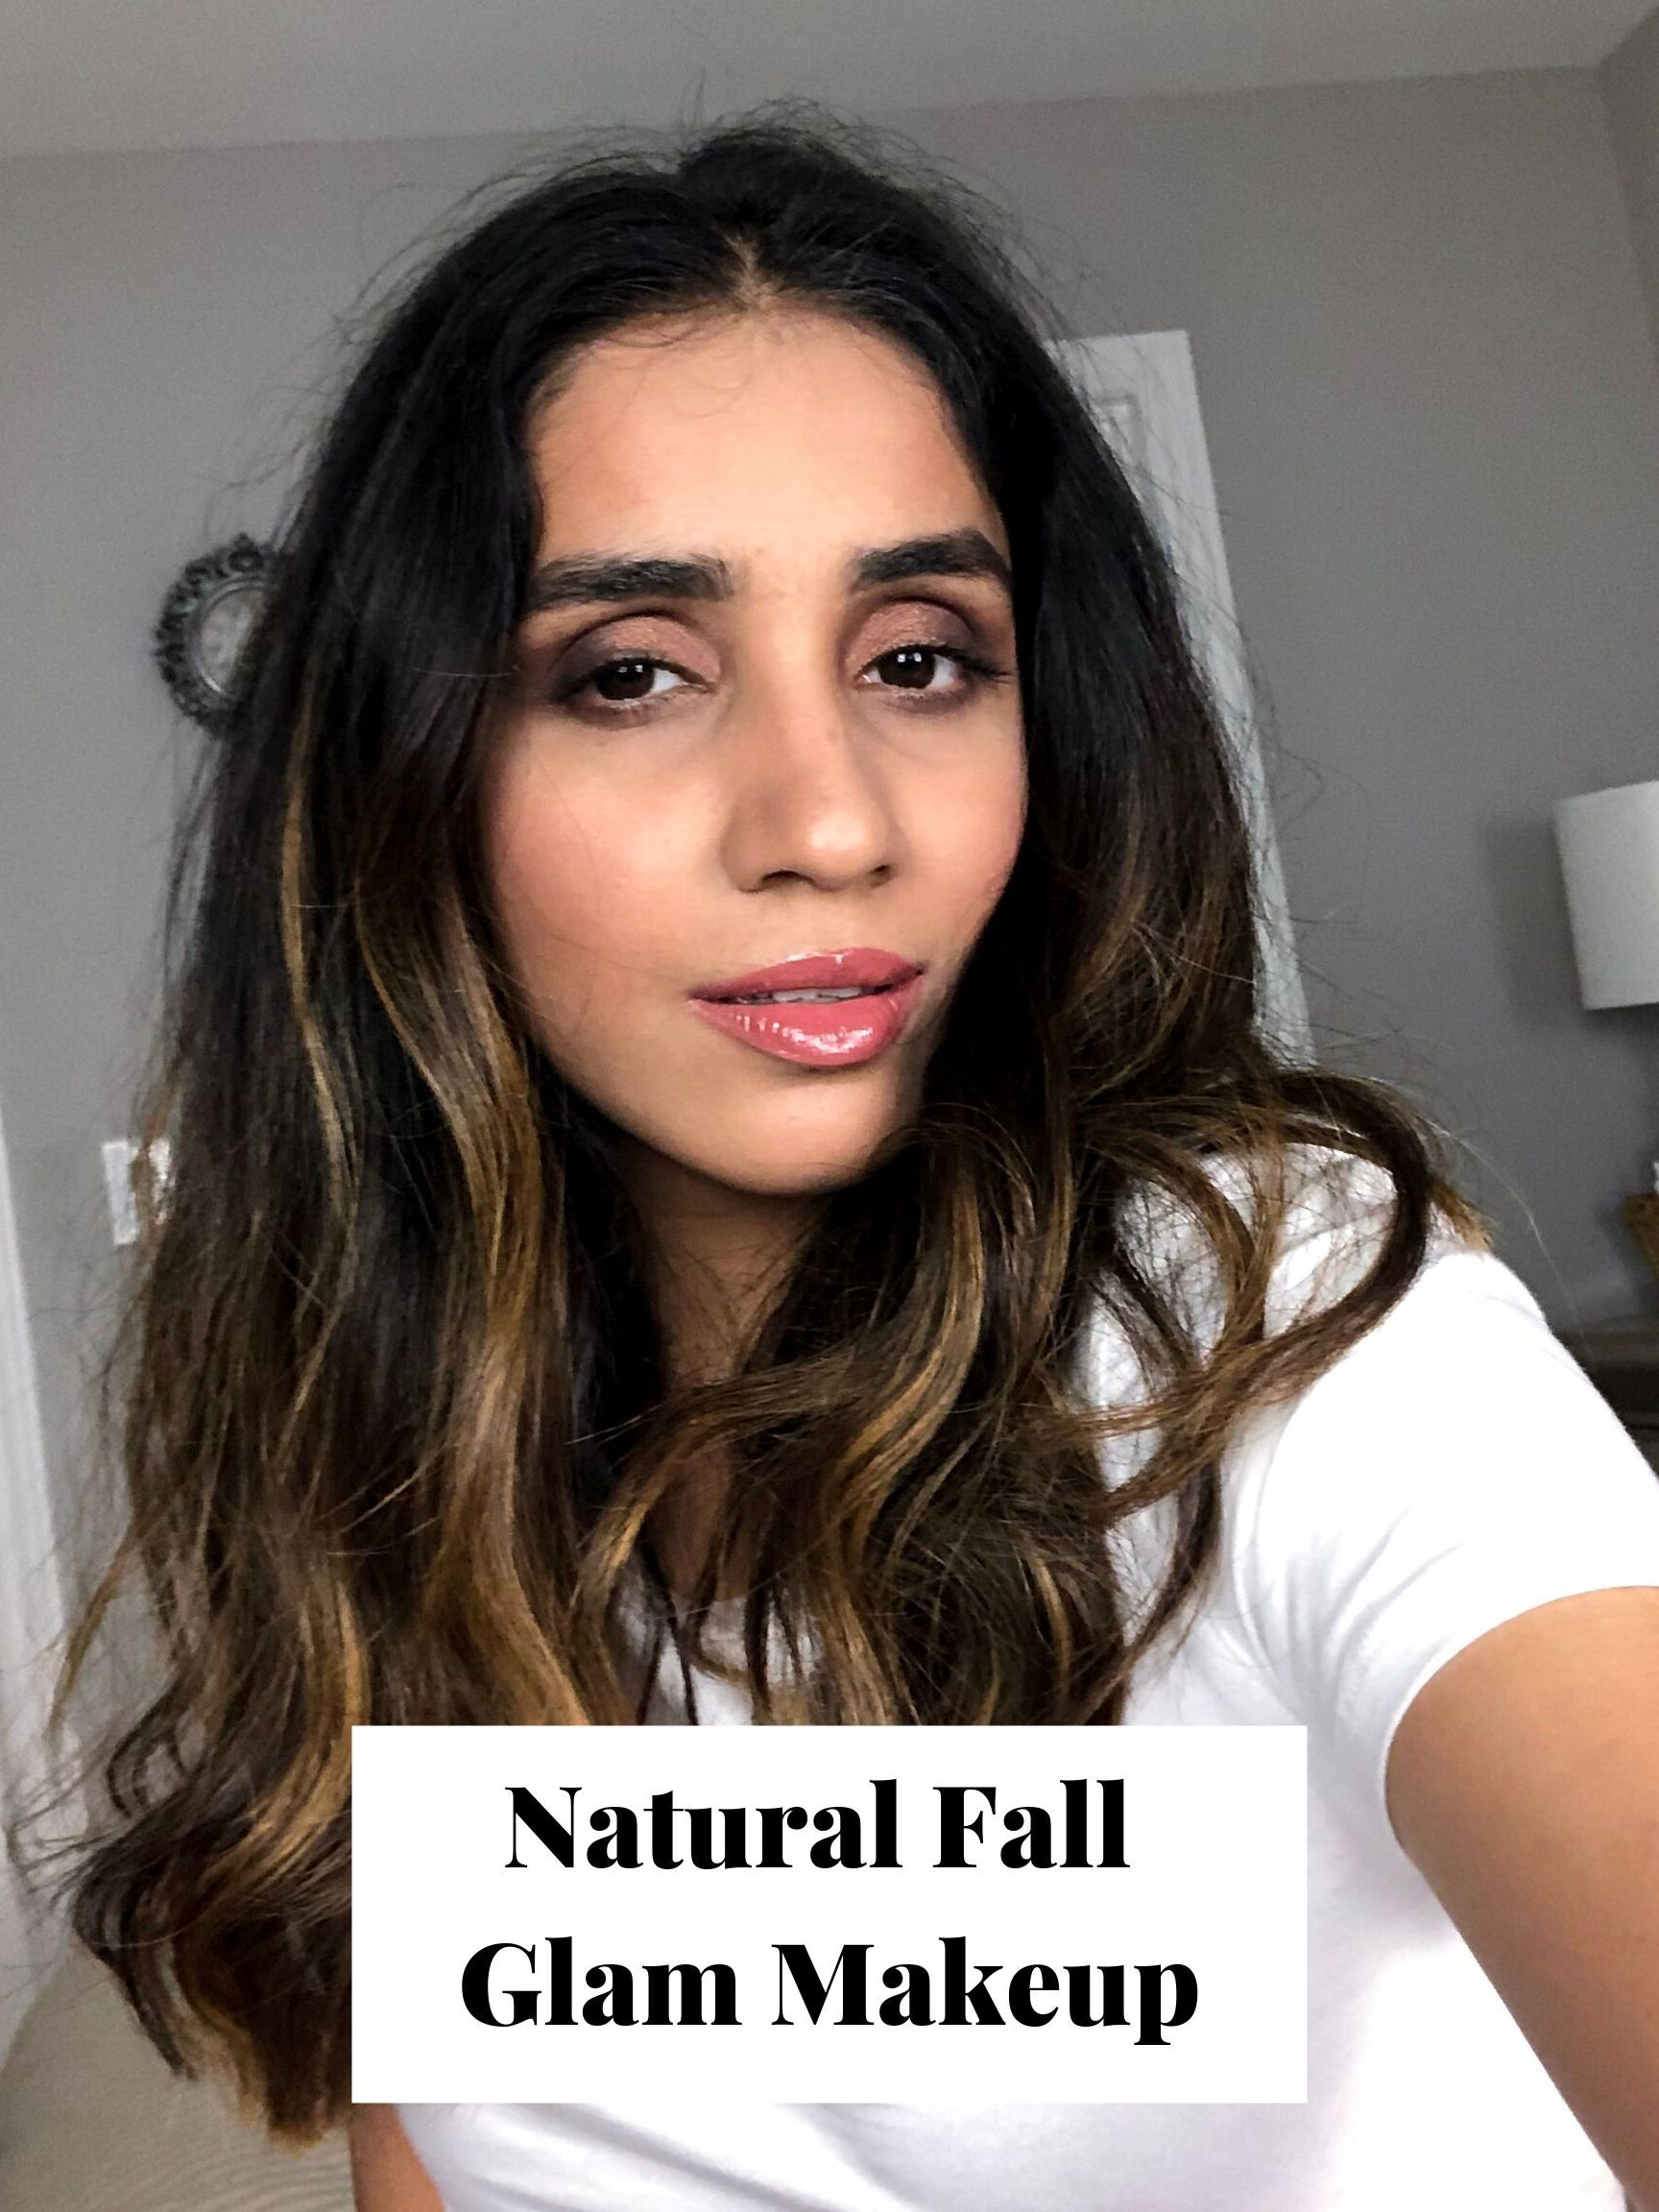 Natural Fall Glam Makeup Tutorial 2019 Glam makeup, Glam